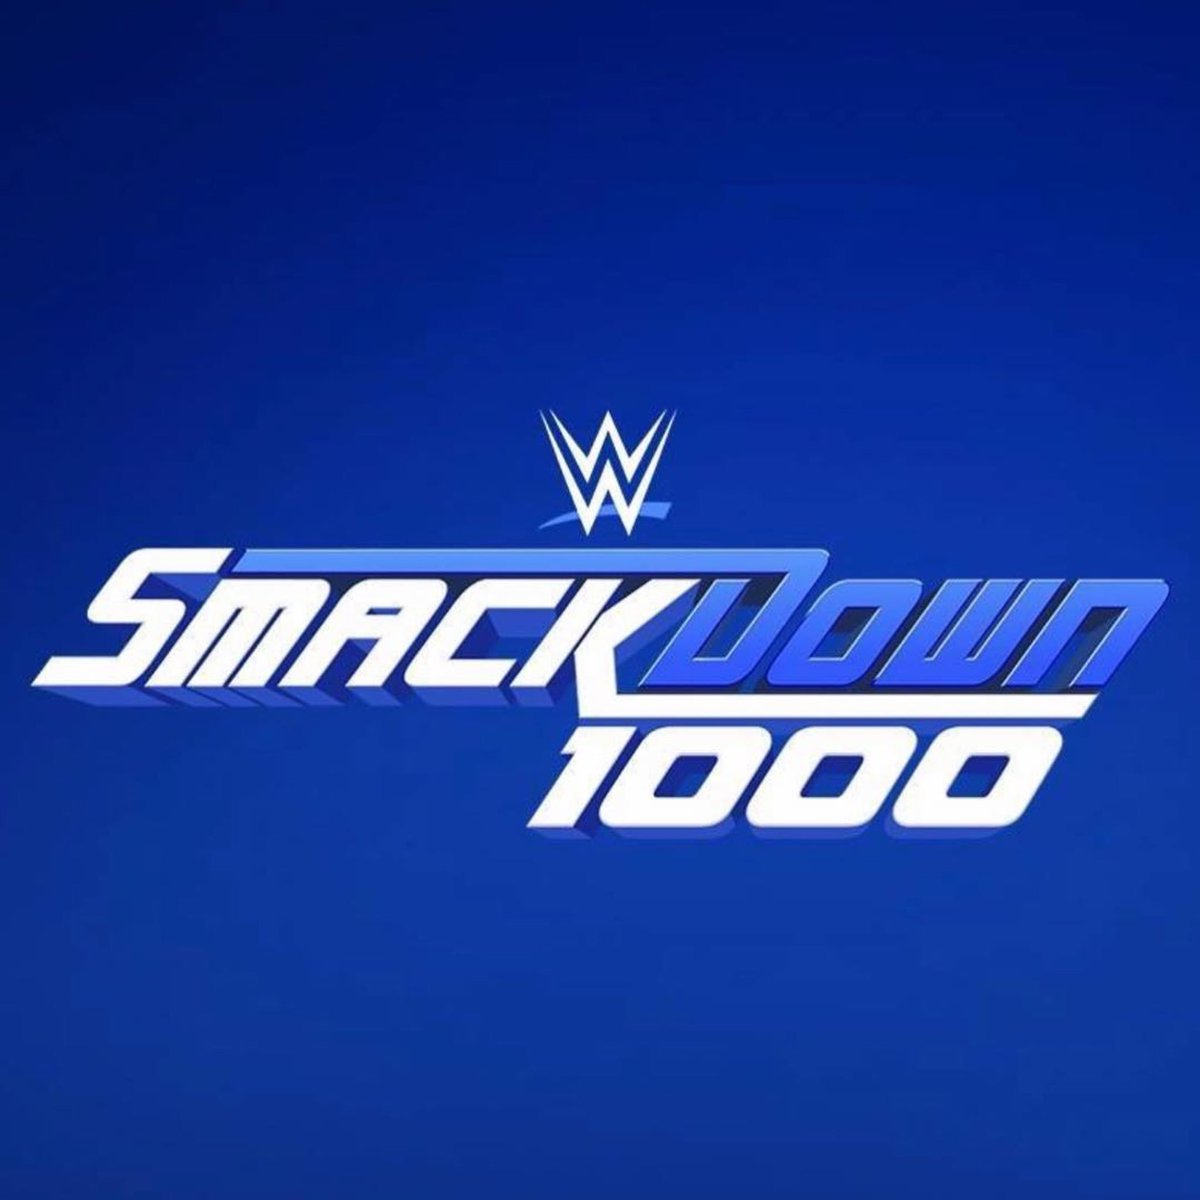 Tonight is the night we celebrate 1000 episodes of SmackDown. Thank you to all who help made SmackDown what it is today. #smackdown1000